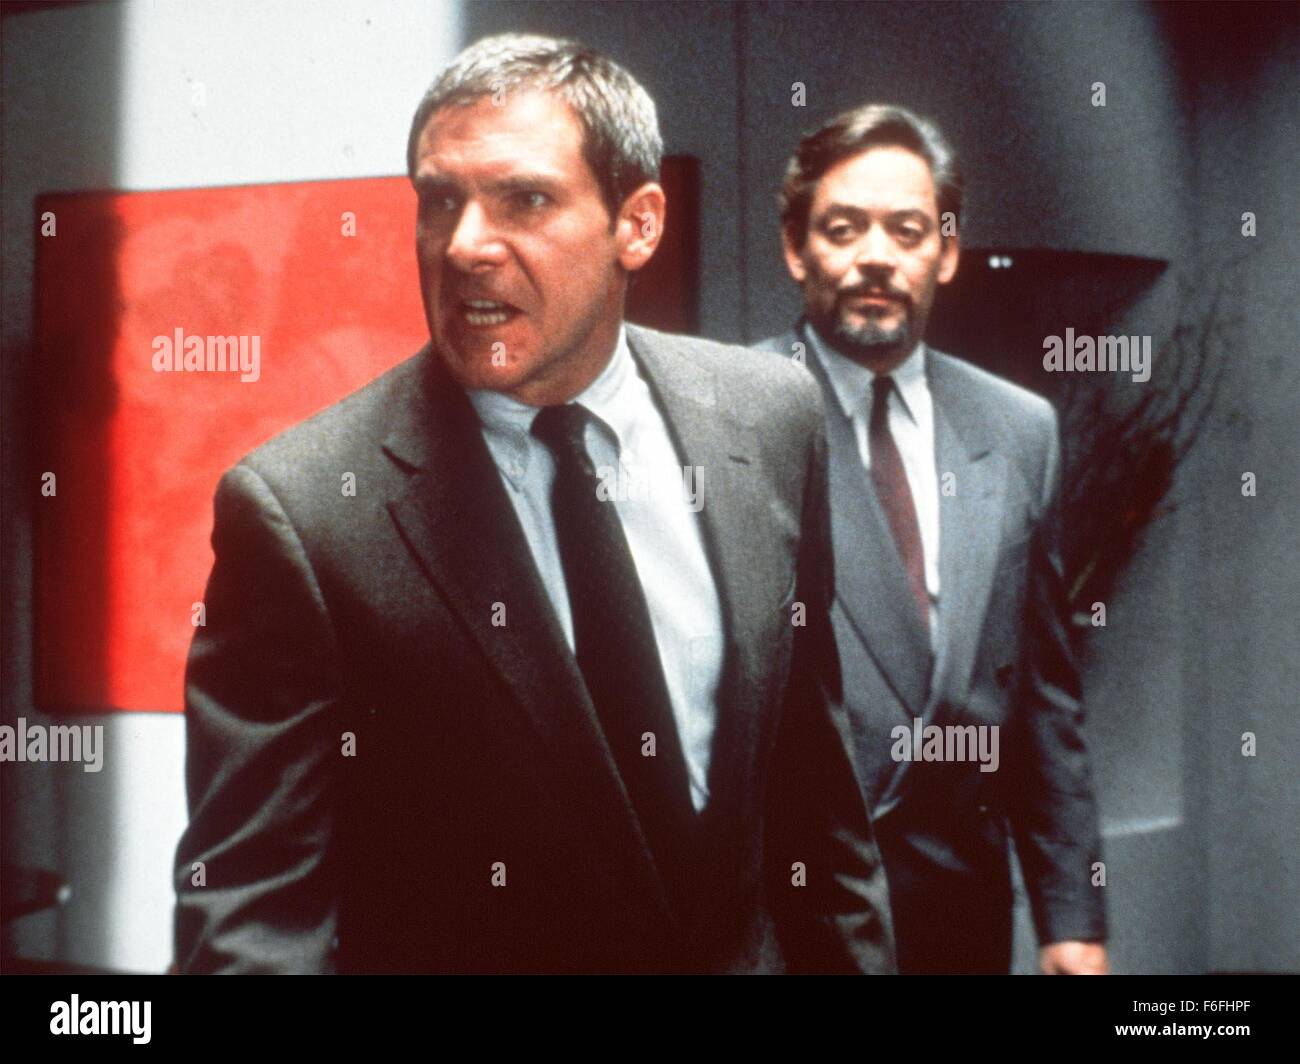 release date july 27 1990 movie title presumed innocent studio warner bros pictures director alan j pakula plot when the woman deputy prosecutor rk - Presumed Innocent Movie